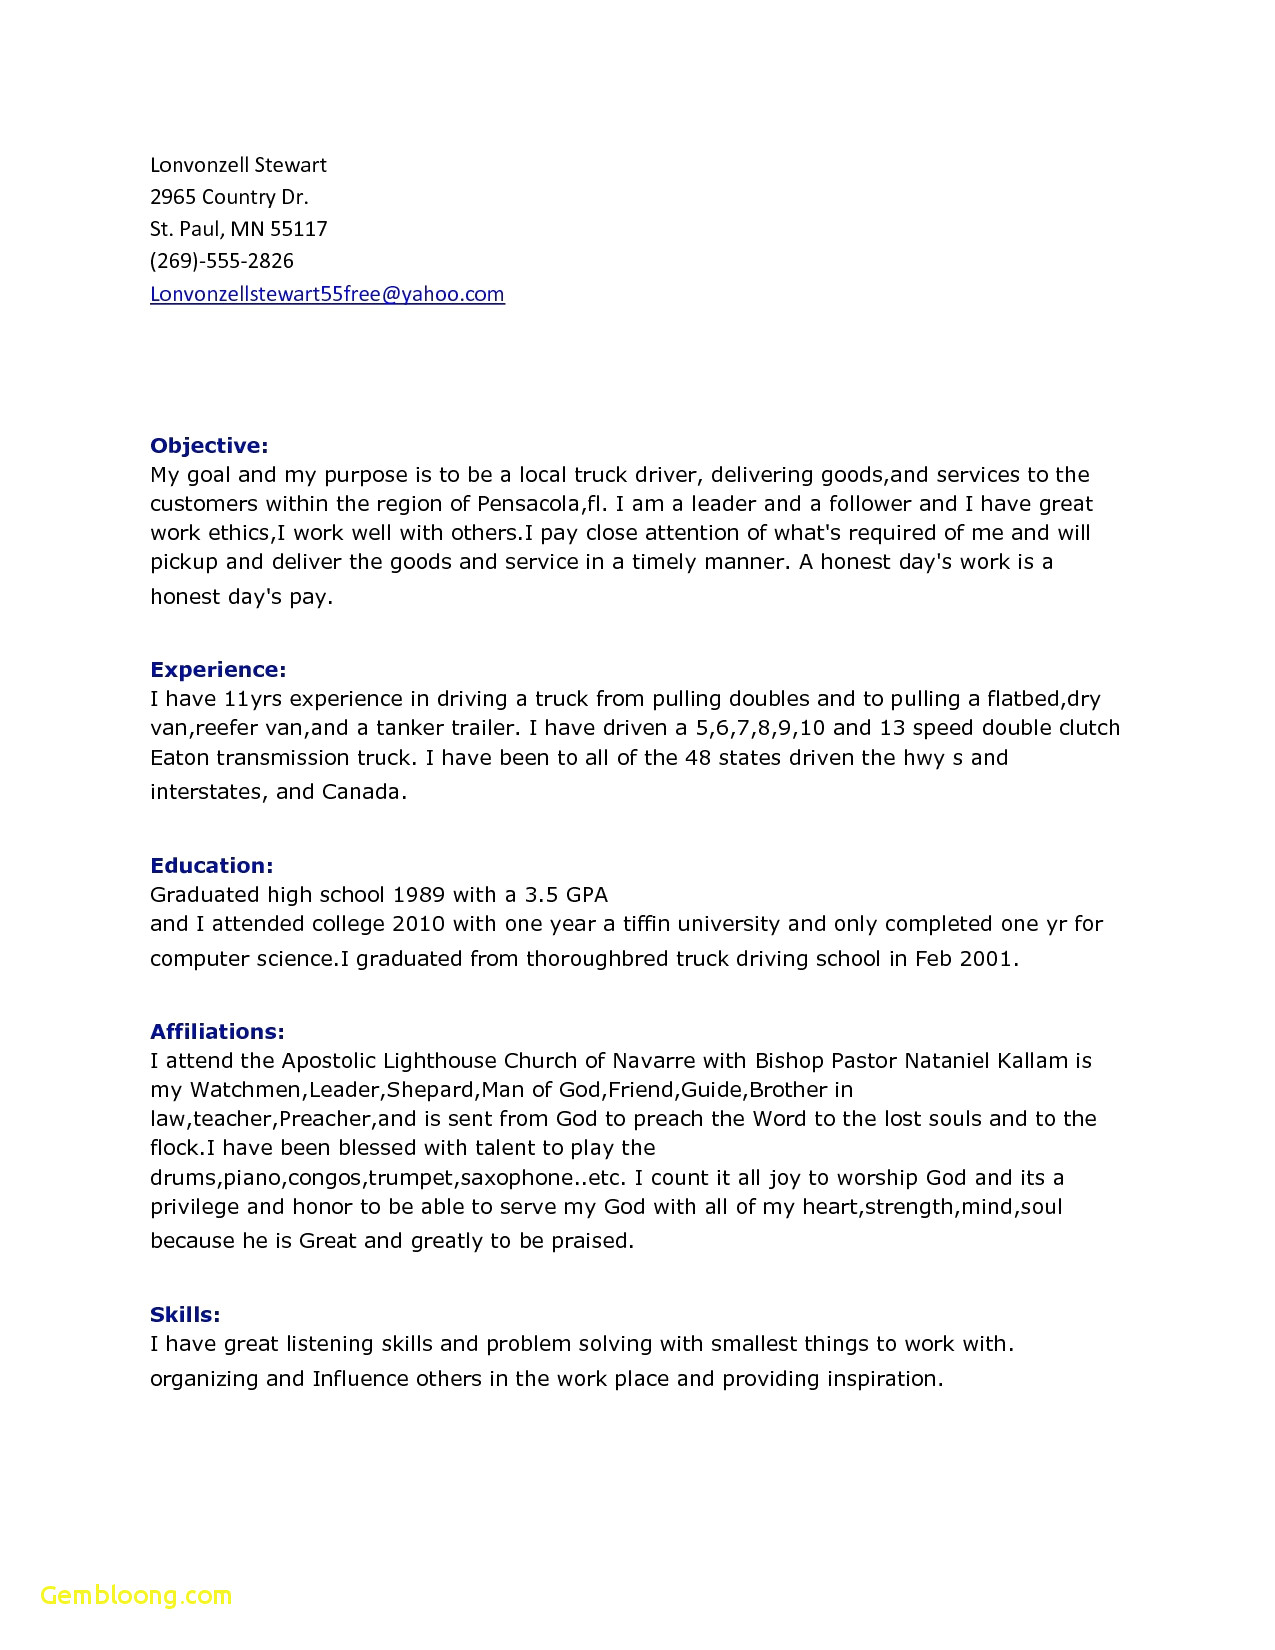 Delivery Driver Resume Examples - 61 Awesome Truck Driver Resume